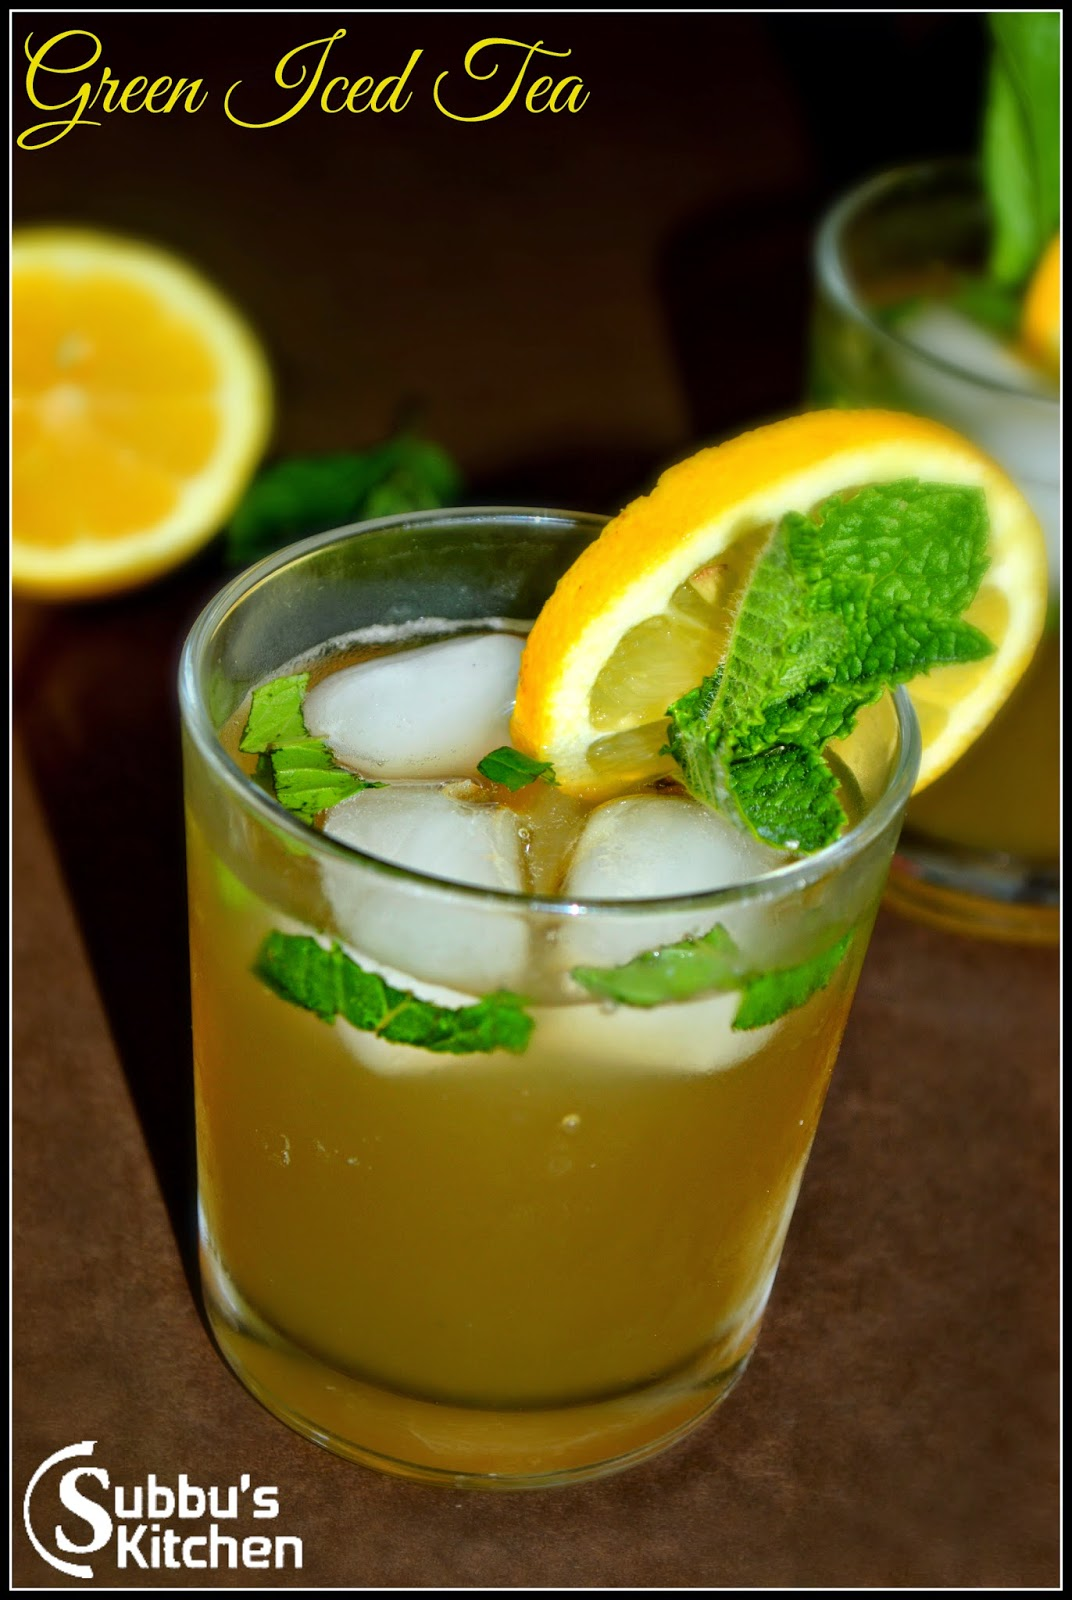 Ginger-Mint-Green Iced Tea